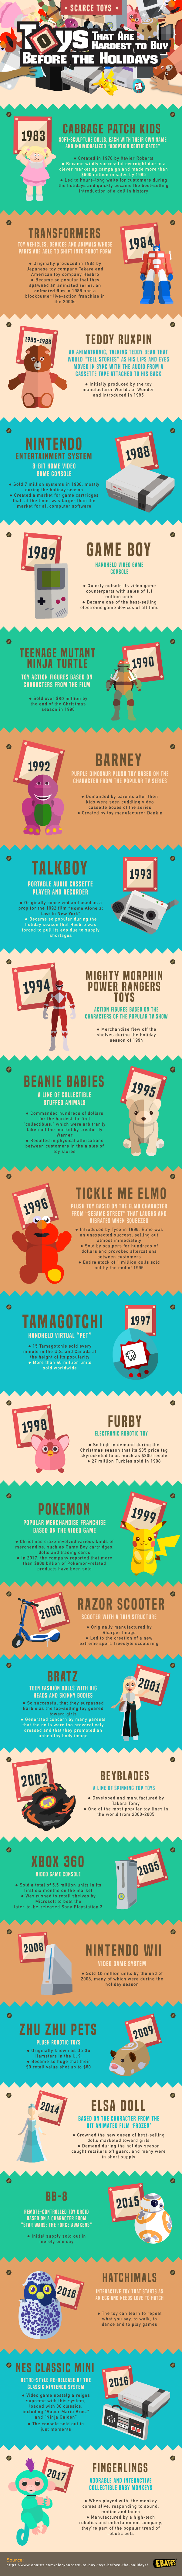 Throwback To The Hottest Toys Of The Year - Infographic